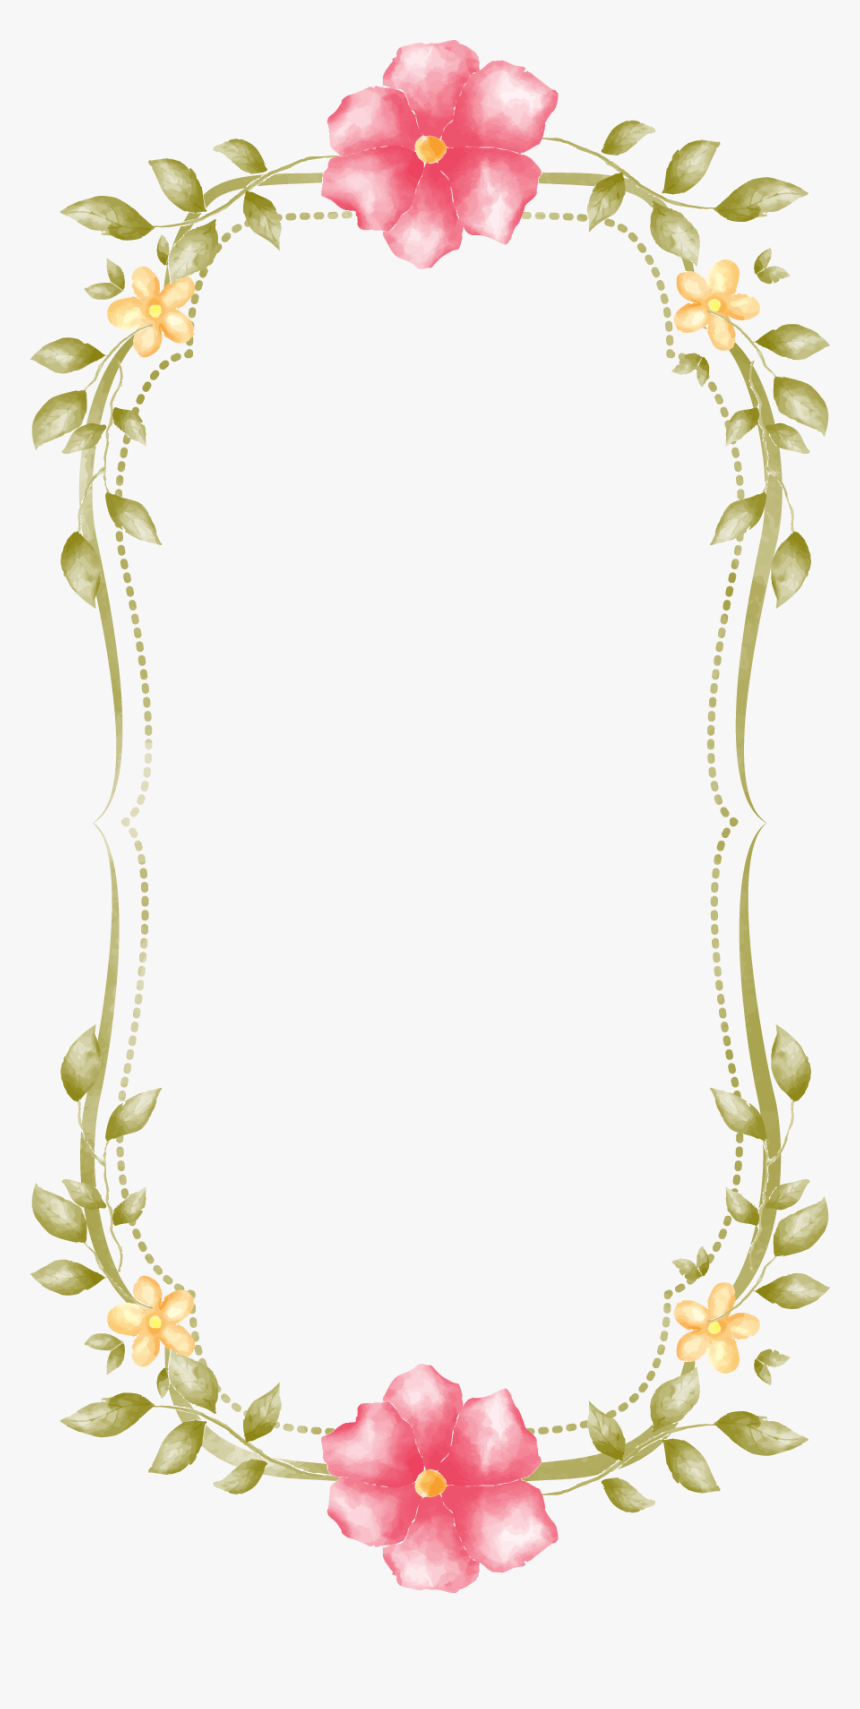 Decorative Border Clipart Png Image - Frame Shabby Chic Png, Transparent Png, Free Download